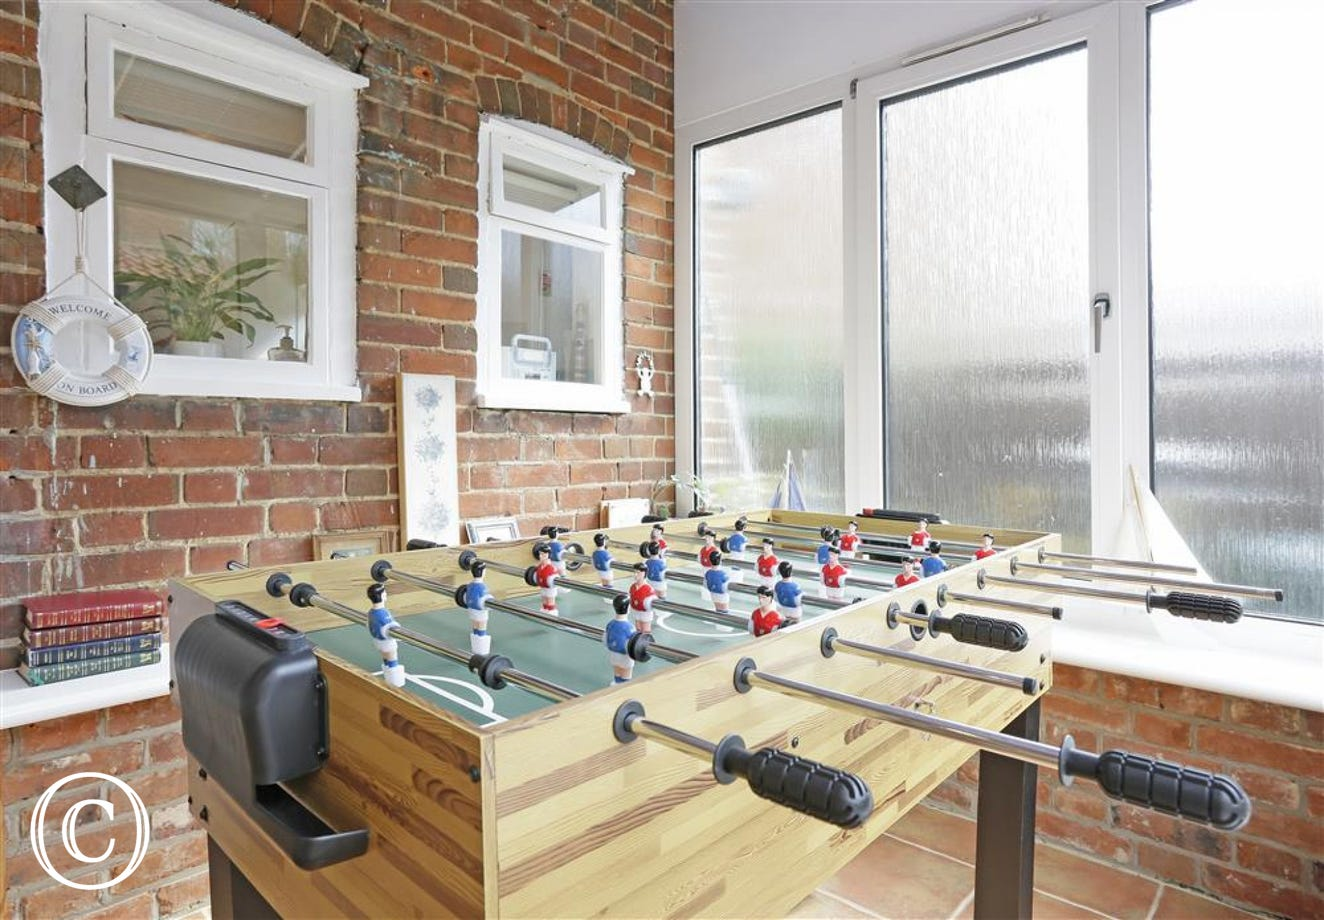 In the conservatory area is a great games table suitable for a competitive game or two.